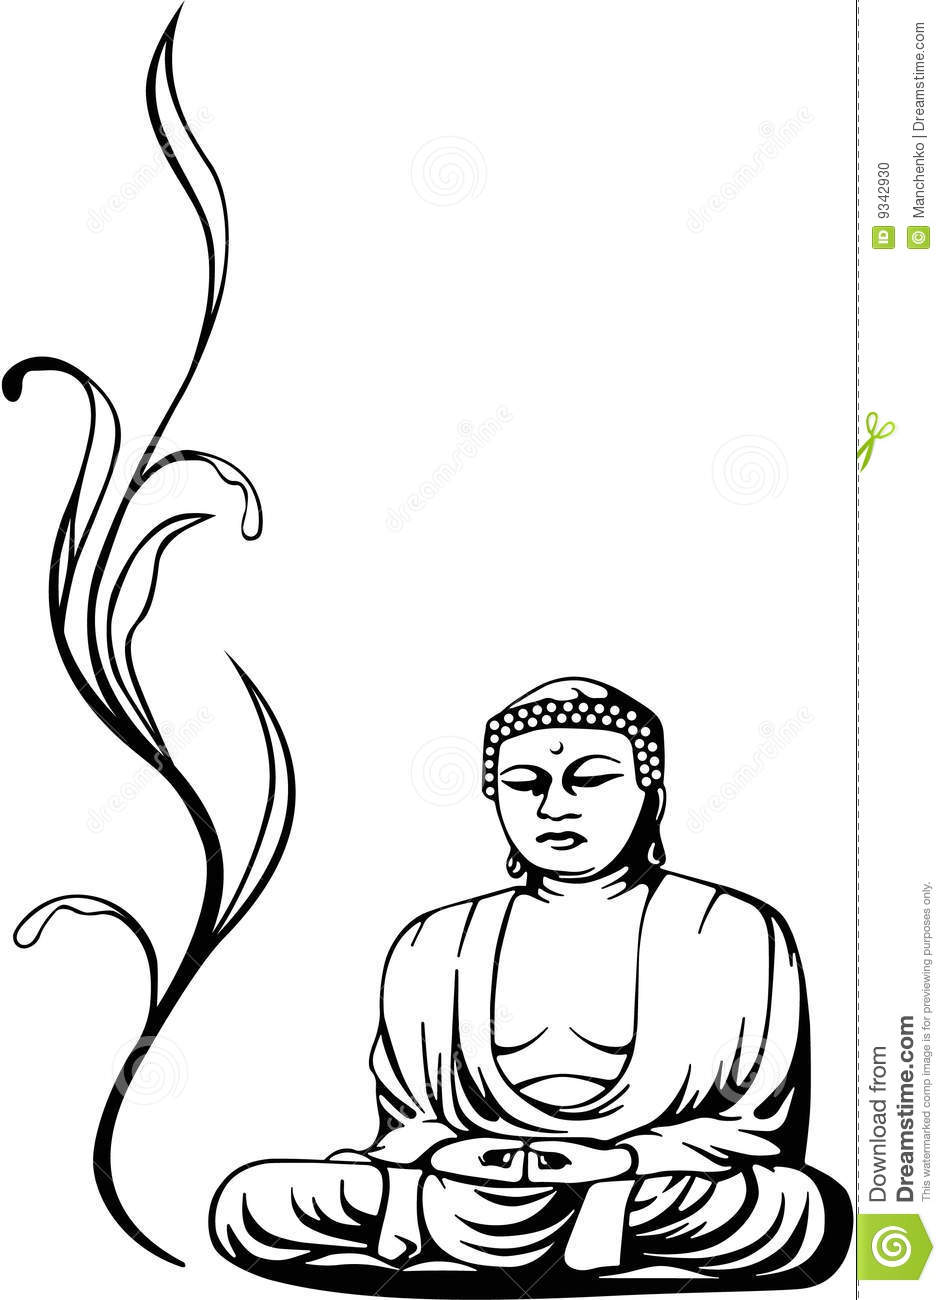 Black And White Sketch Or Illustration Of A Buddha Sitting